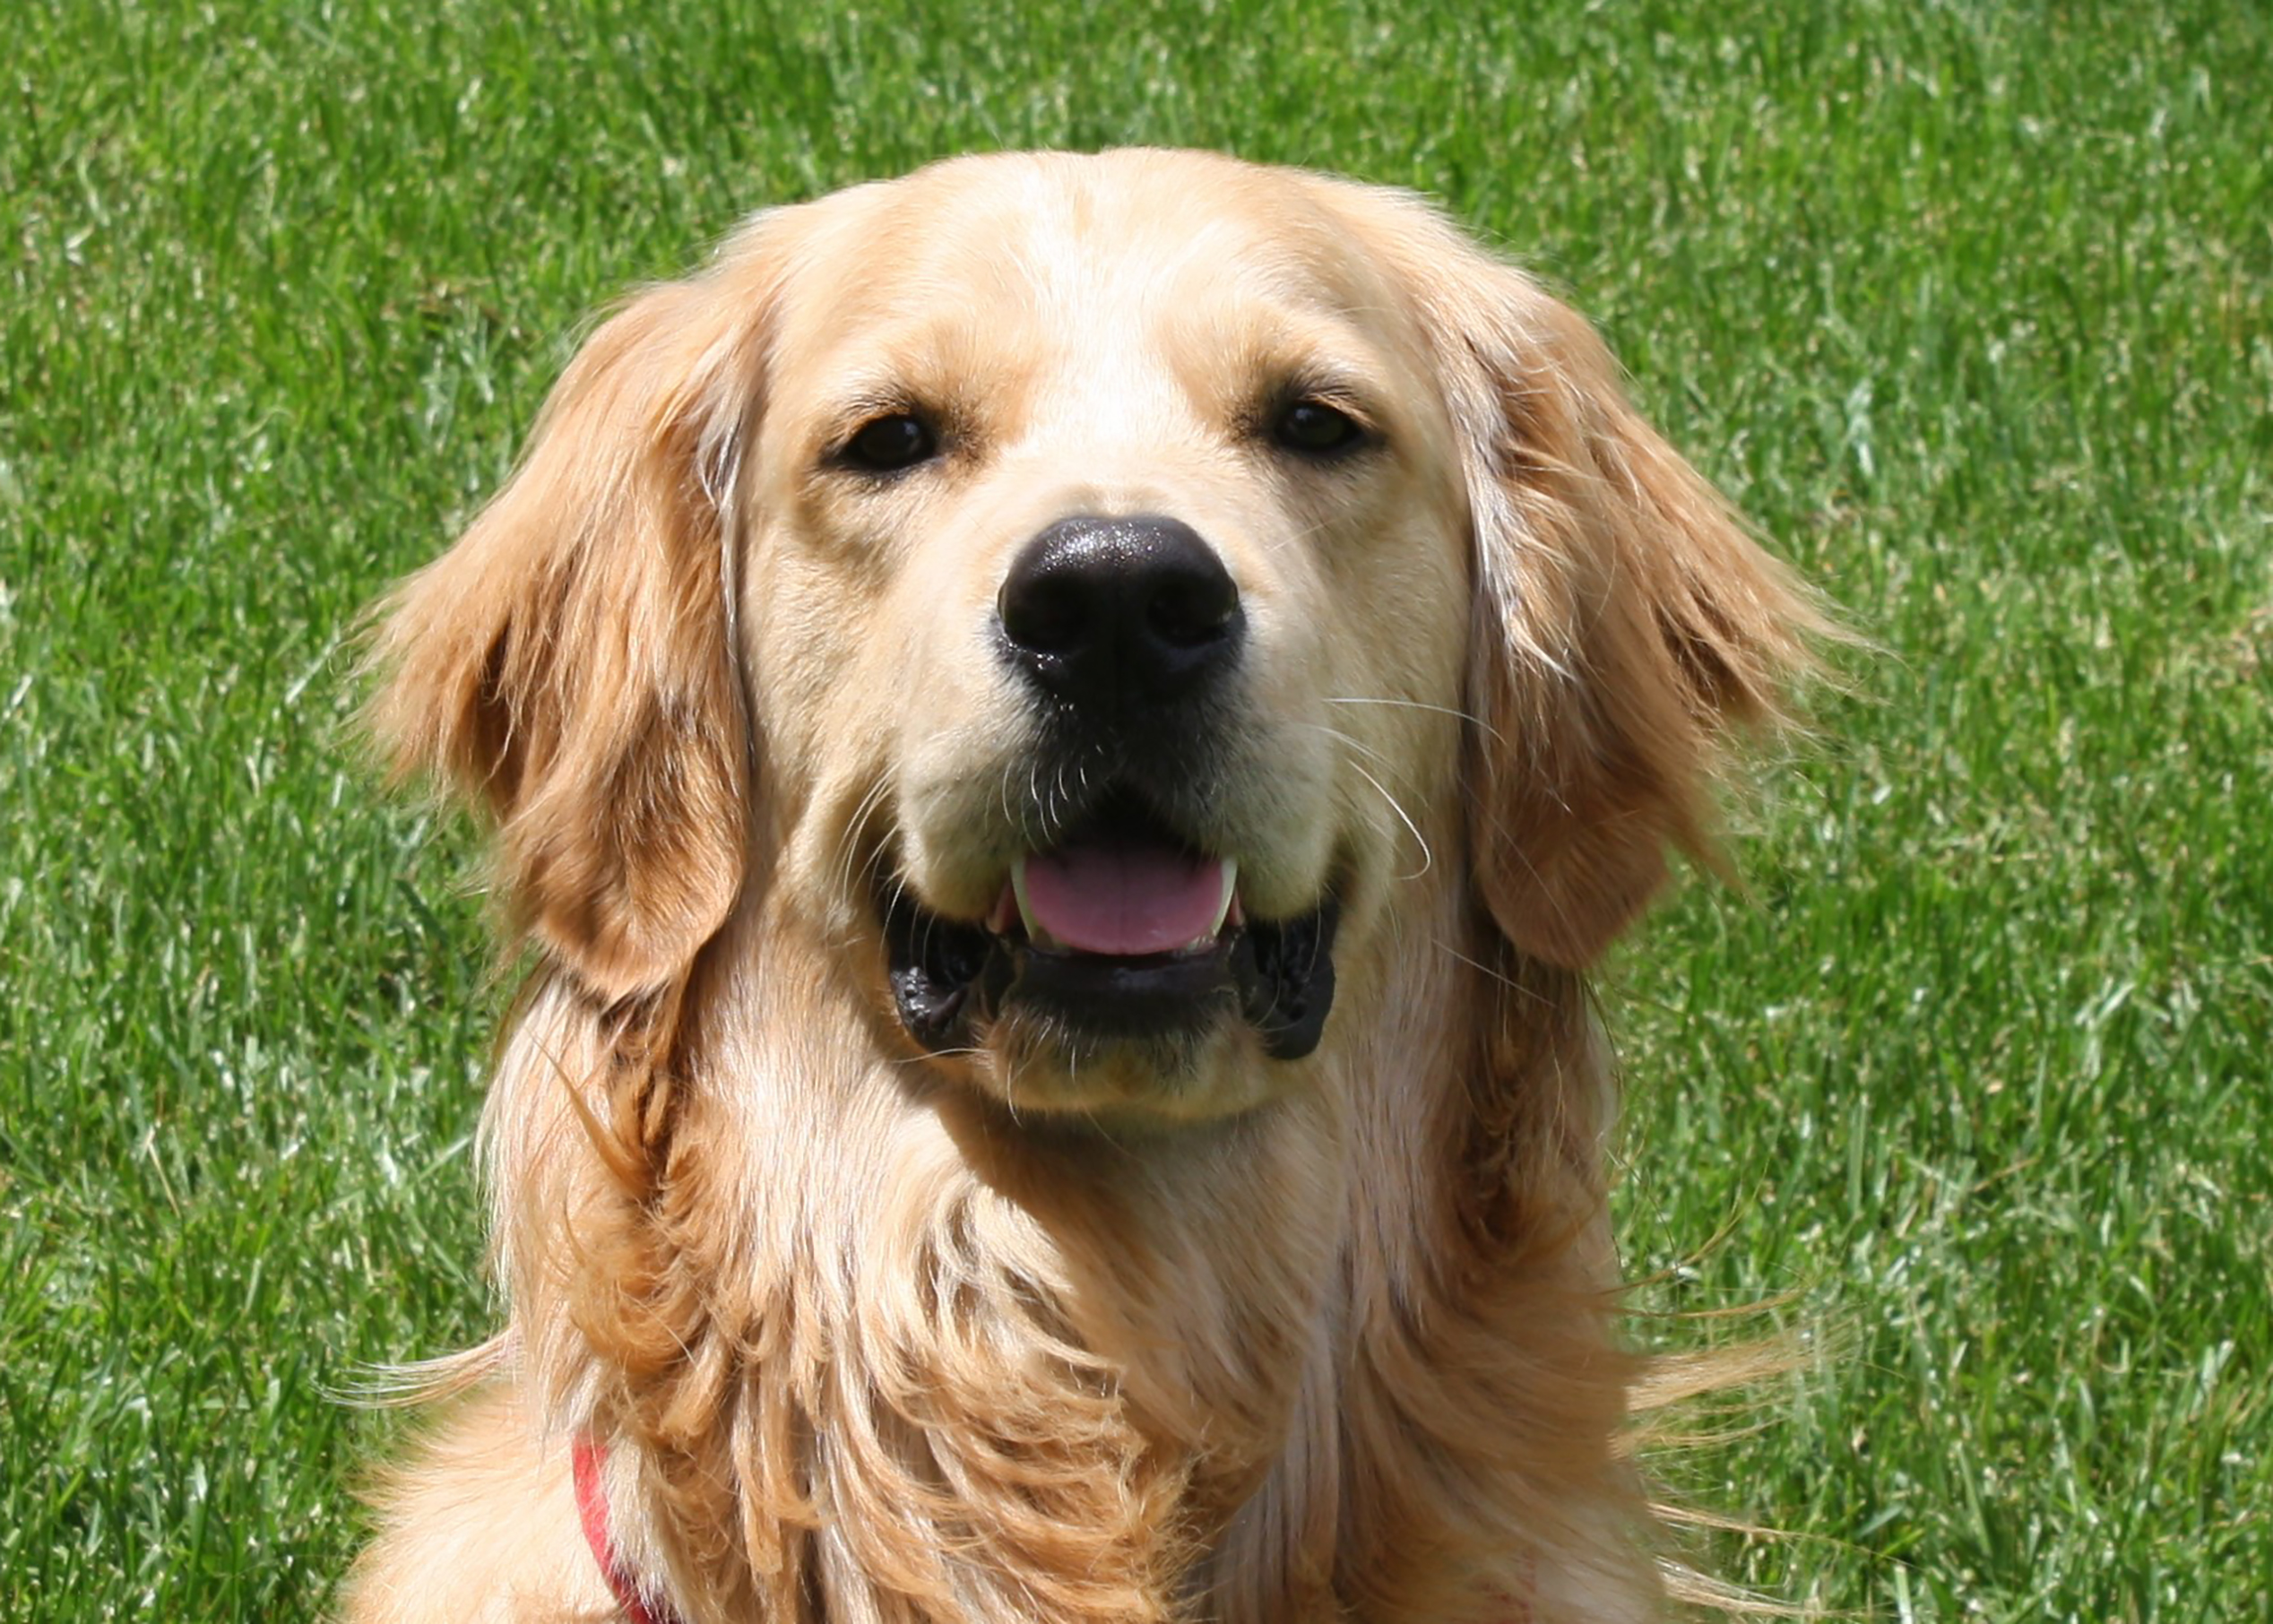 An image of a golden retriever smiling at the camera